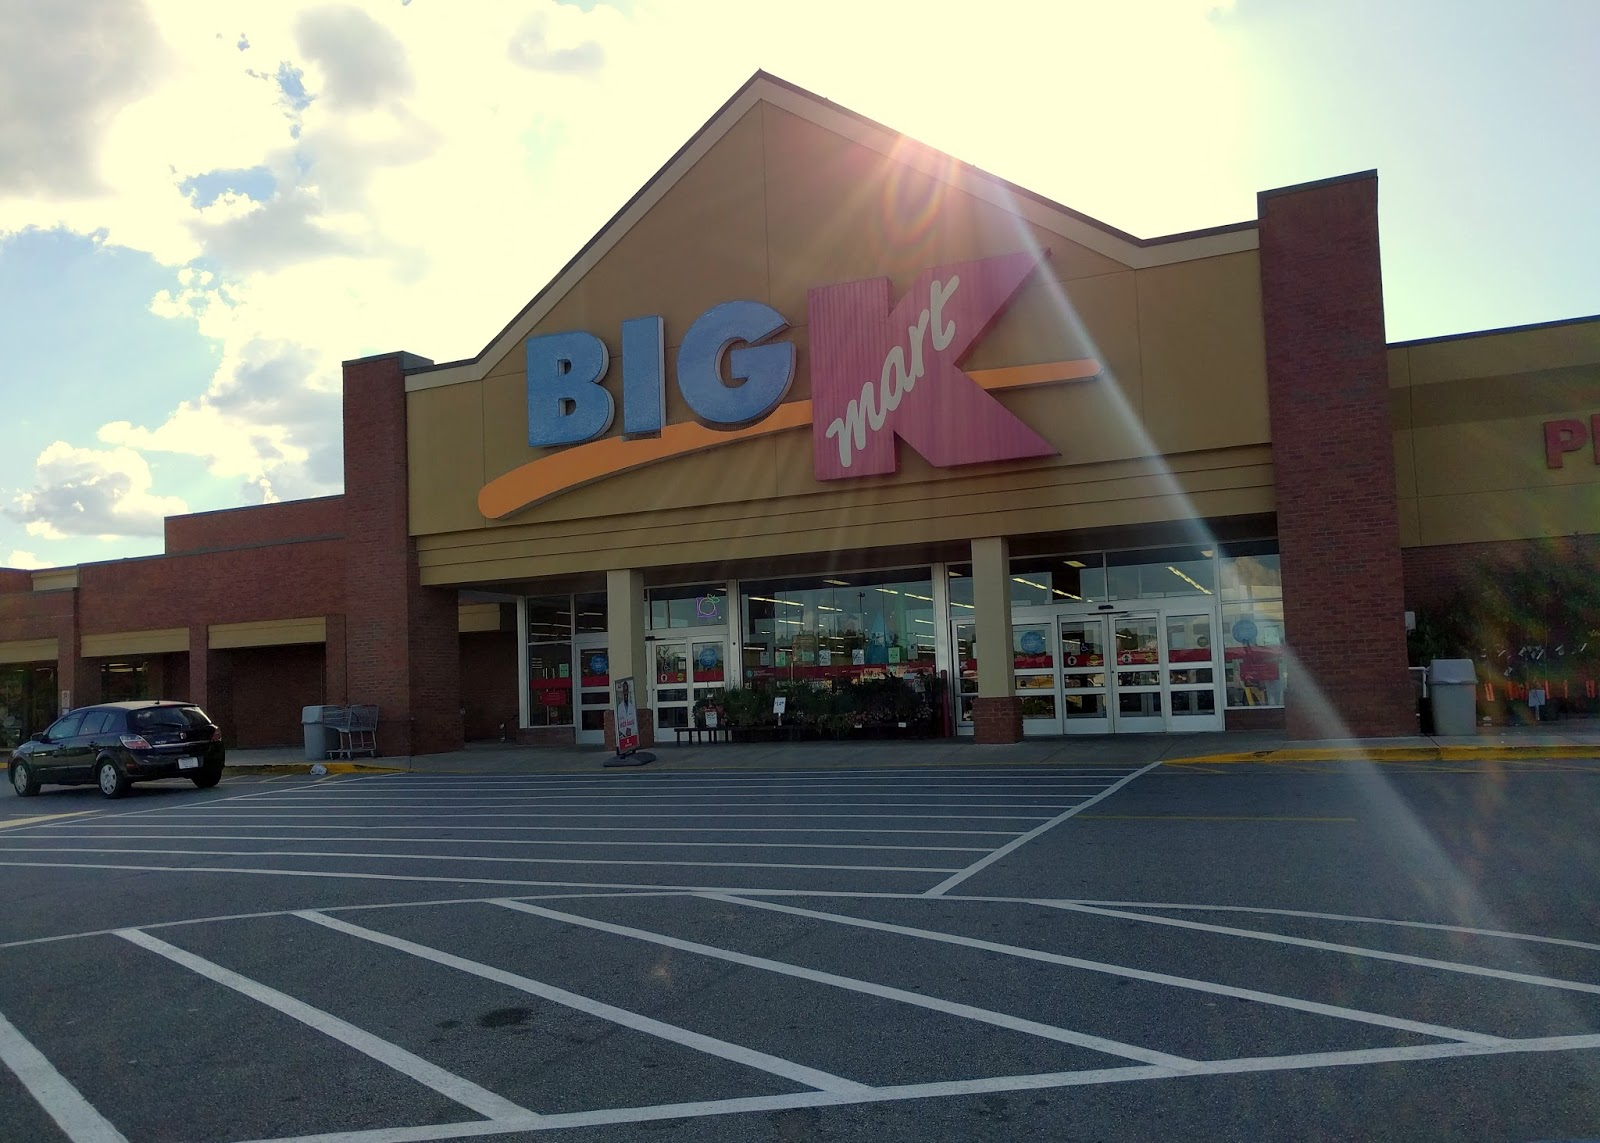 Kmart world spotlight kmart macon ga spotlight kmart macon ga gumiabroncs Choice Image